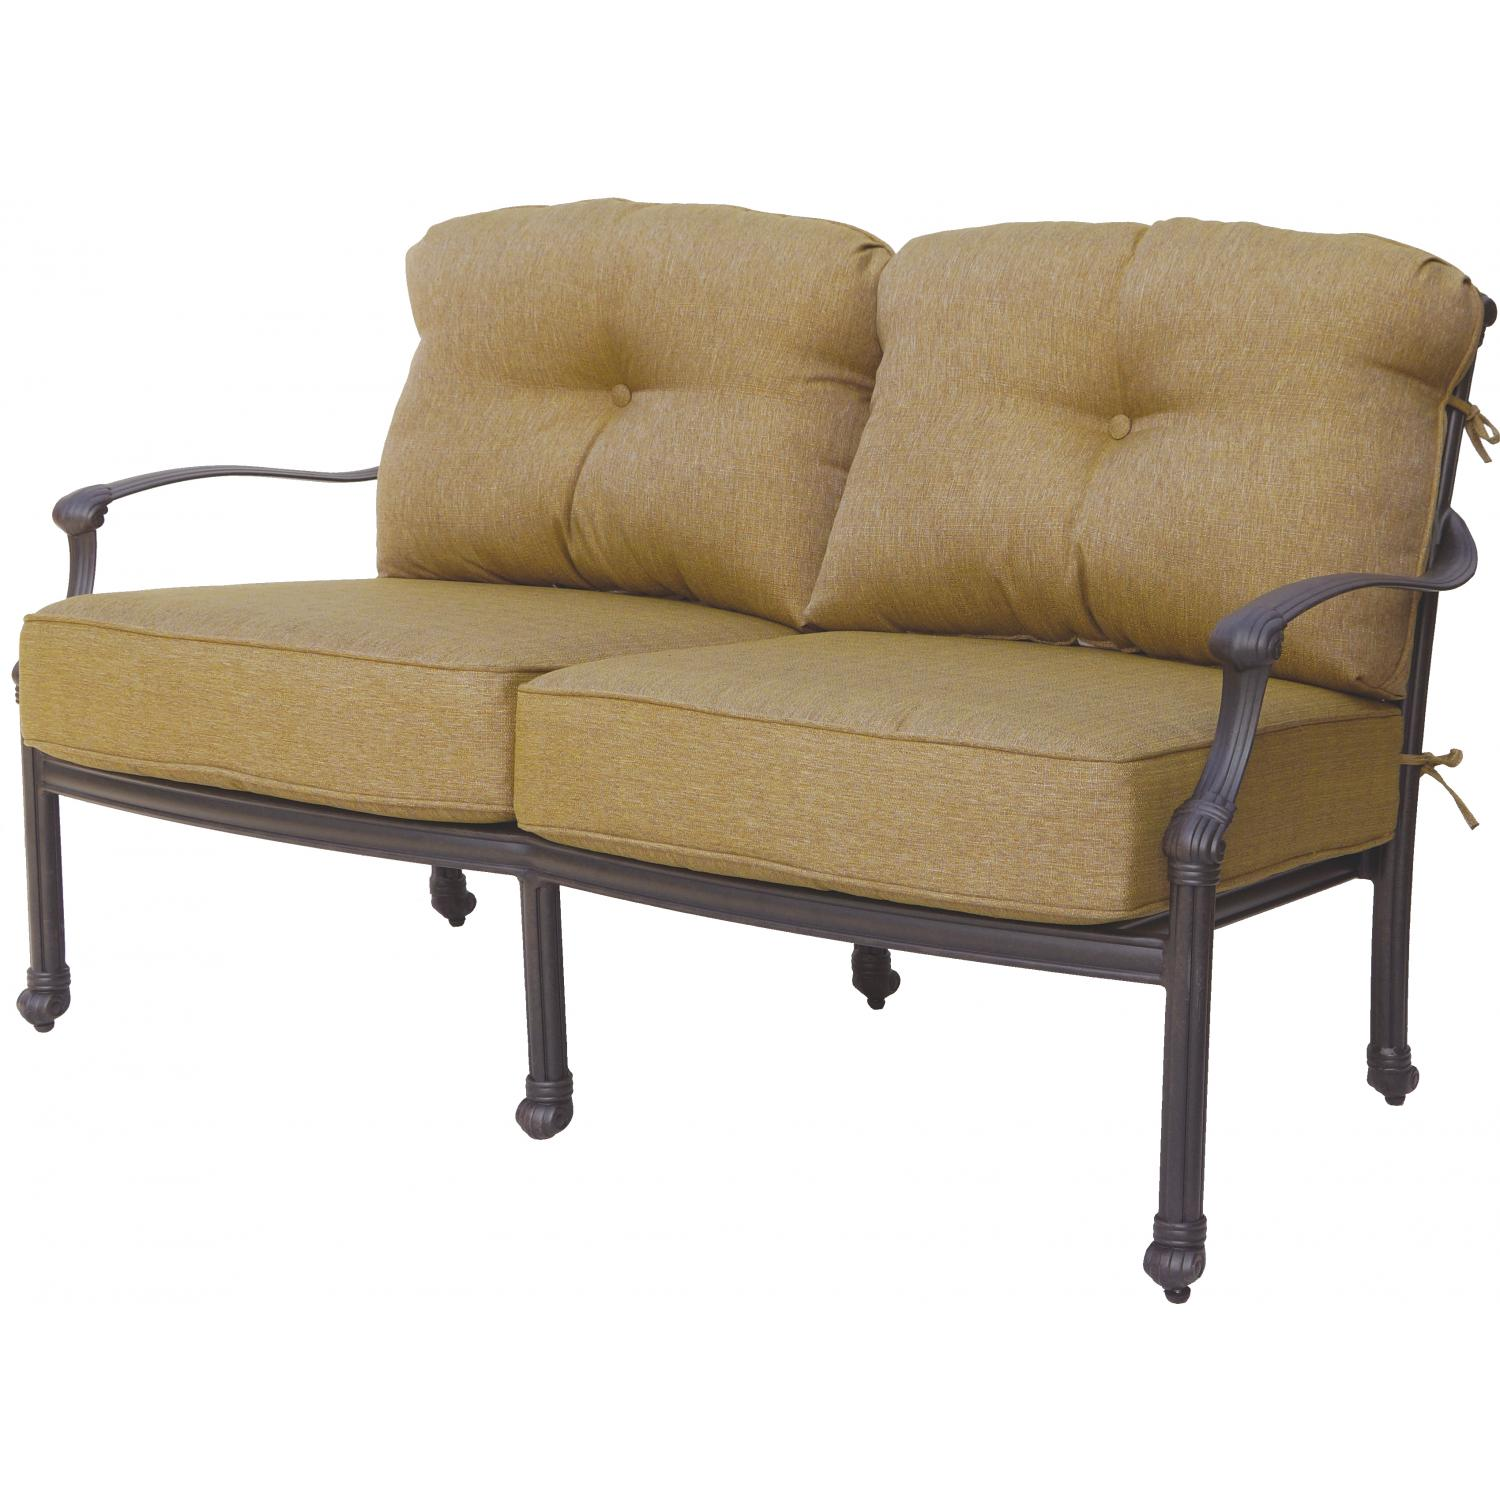 Picture of Darlee Camino Real Cast Aluminum Patio Loveseat - Antique Bronze